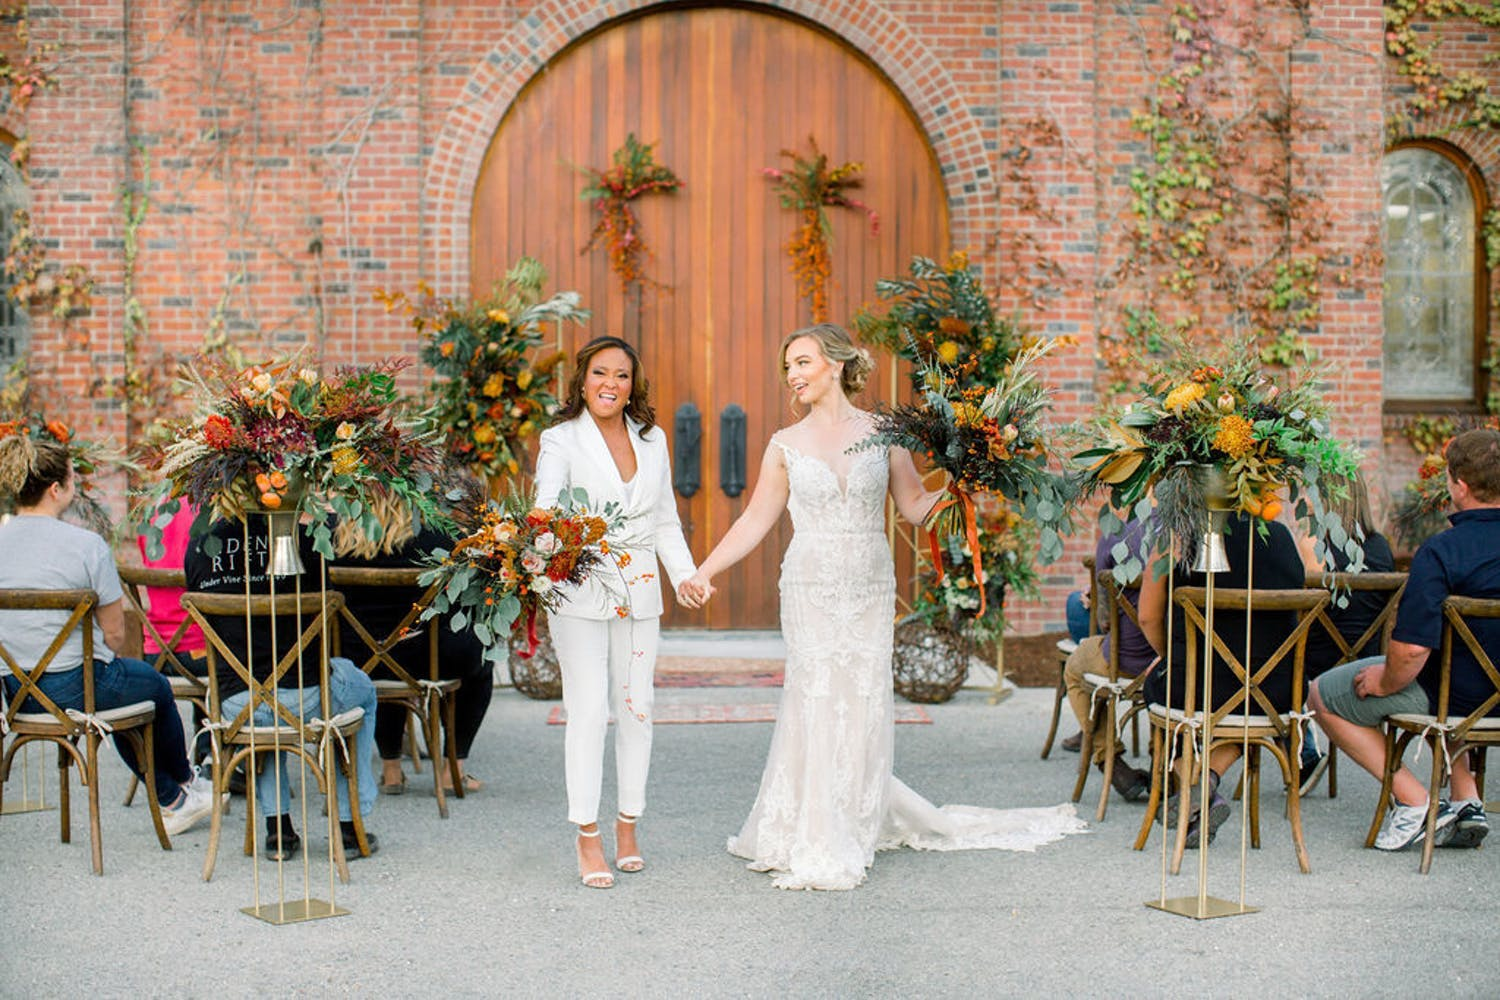 Two brides during recessional at boho-style vineyard micro wedding   Partyslate